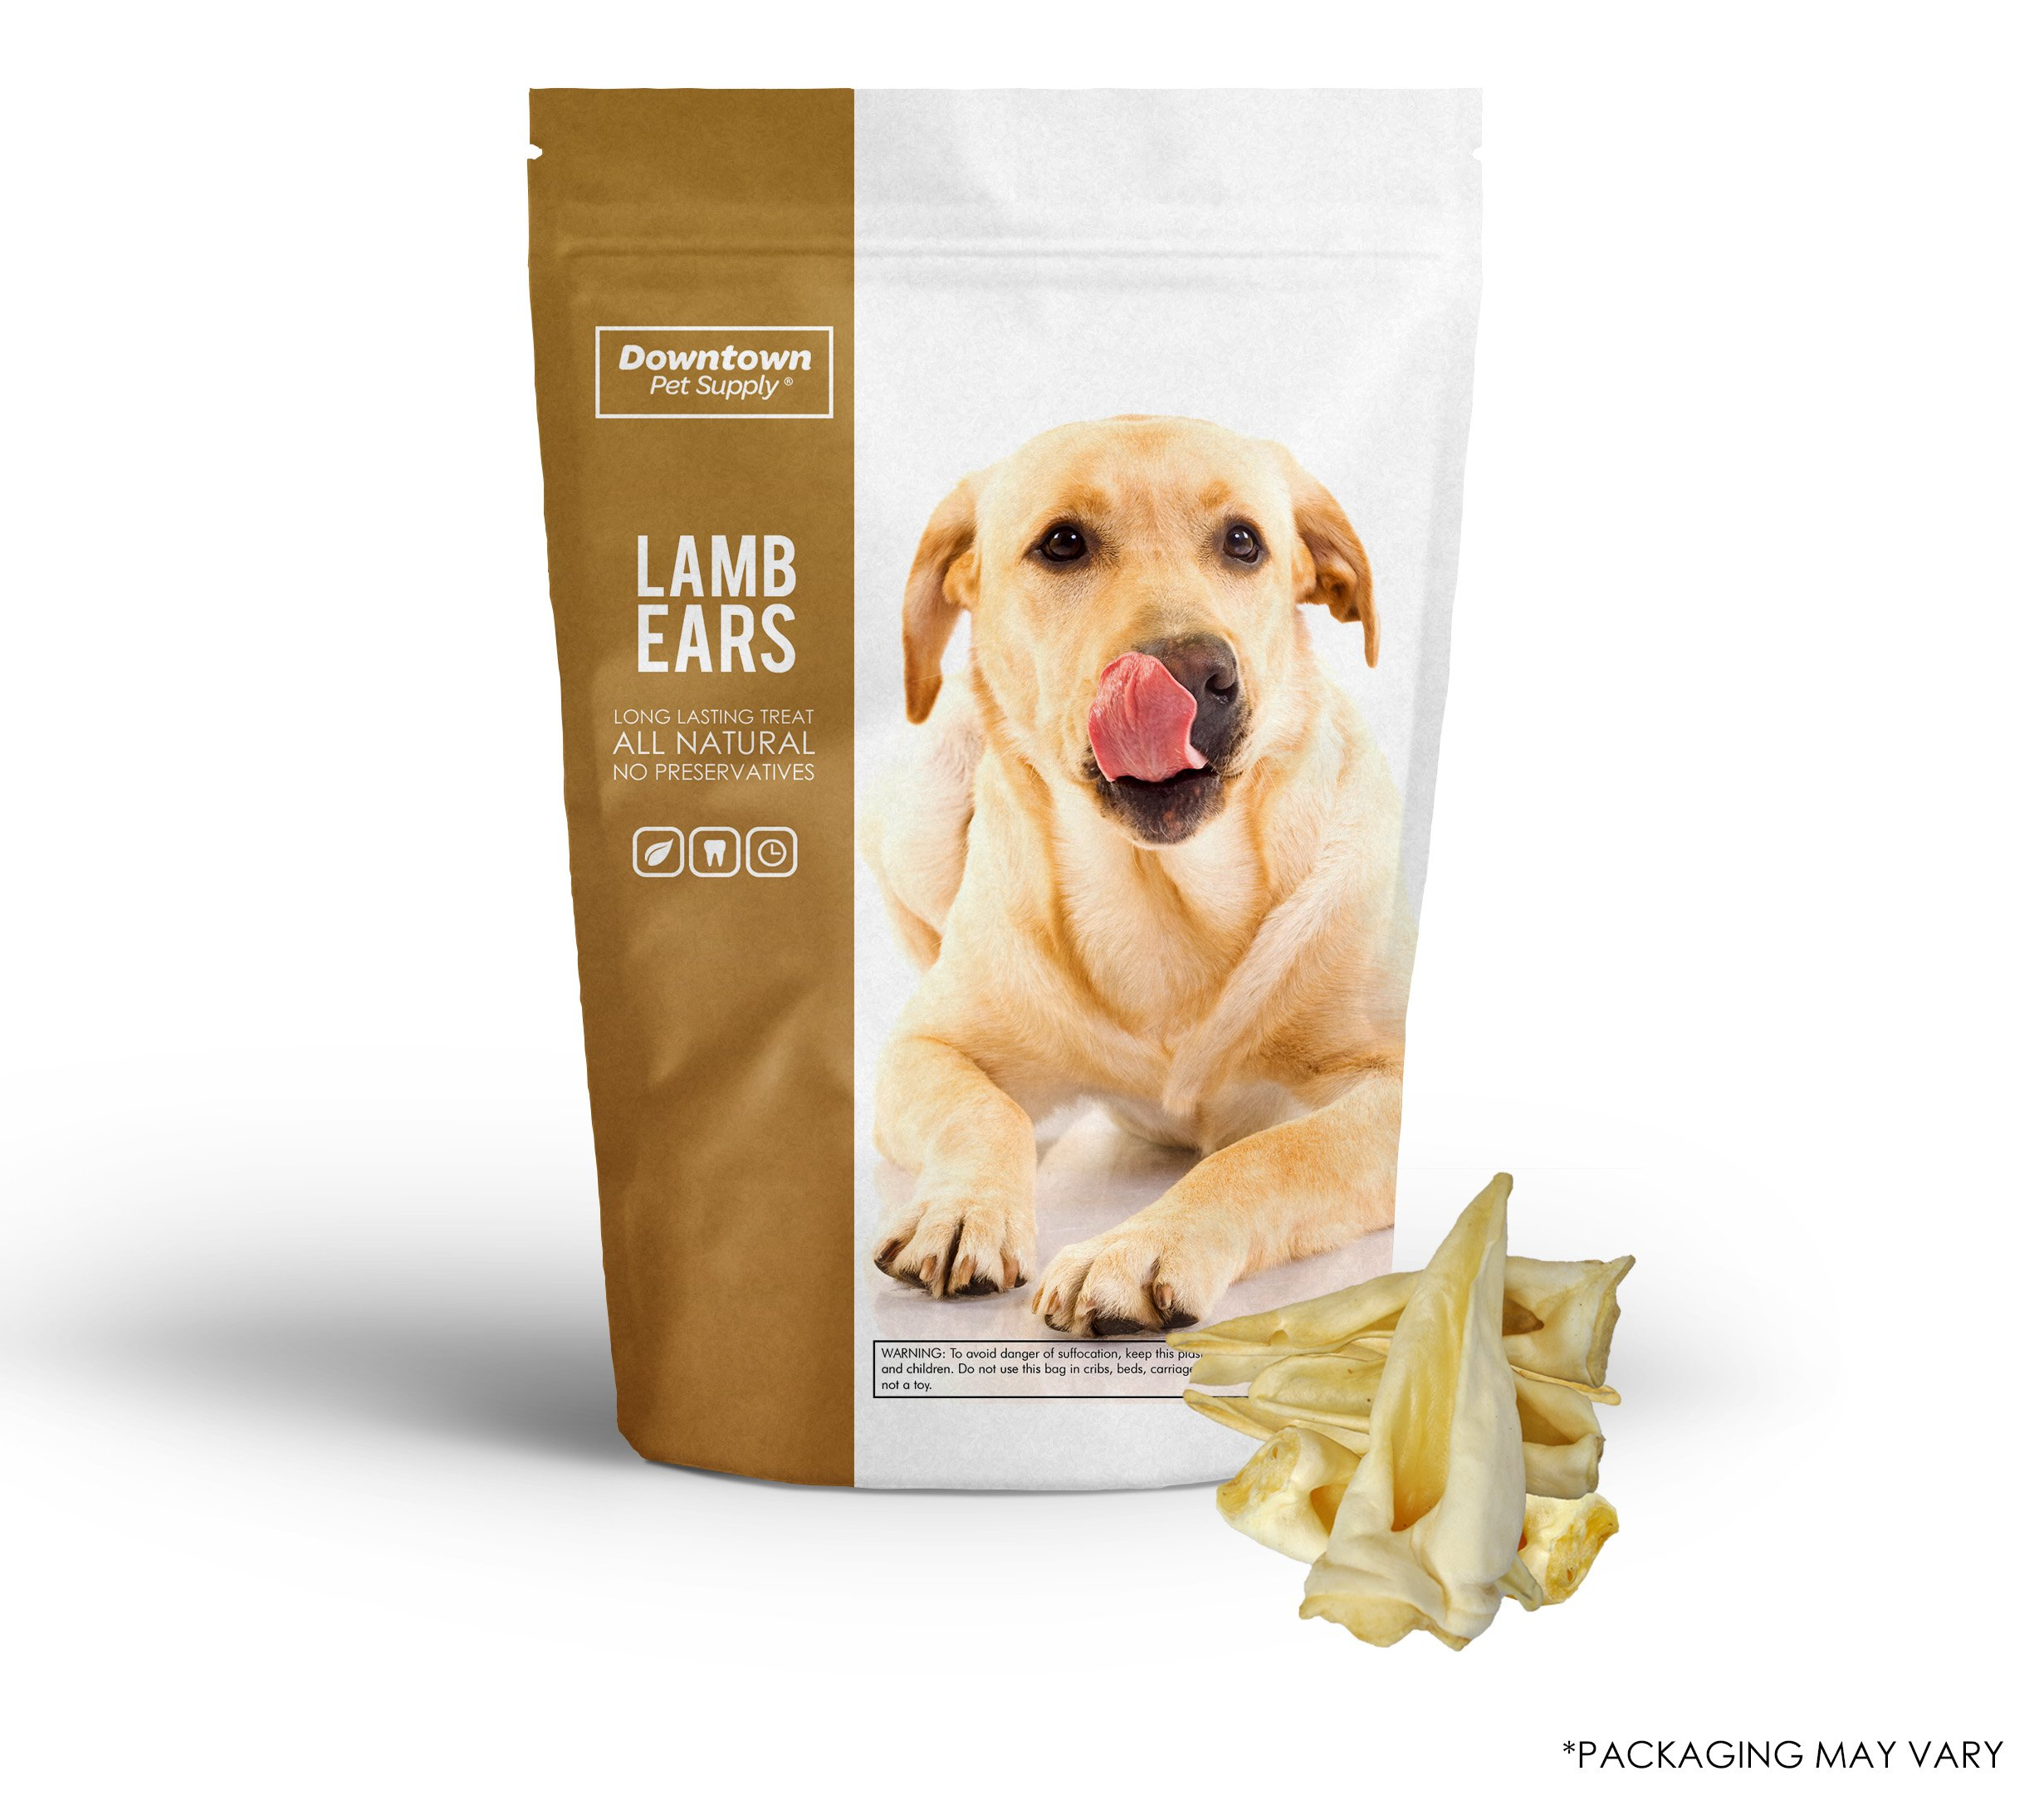 Downtown Pet Supply Best All Natural Alternative to Pig Ears for Dogs, Healthy Dog Training Treats (Lamb, 25 Pack)